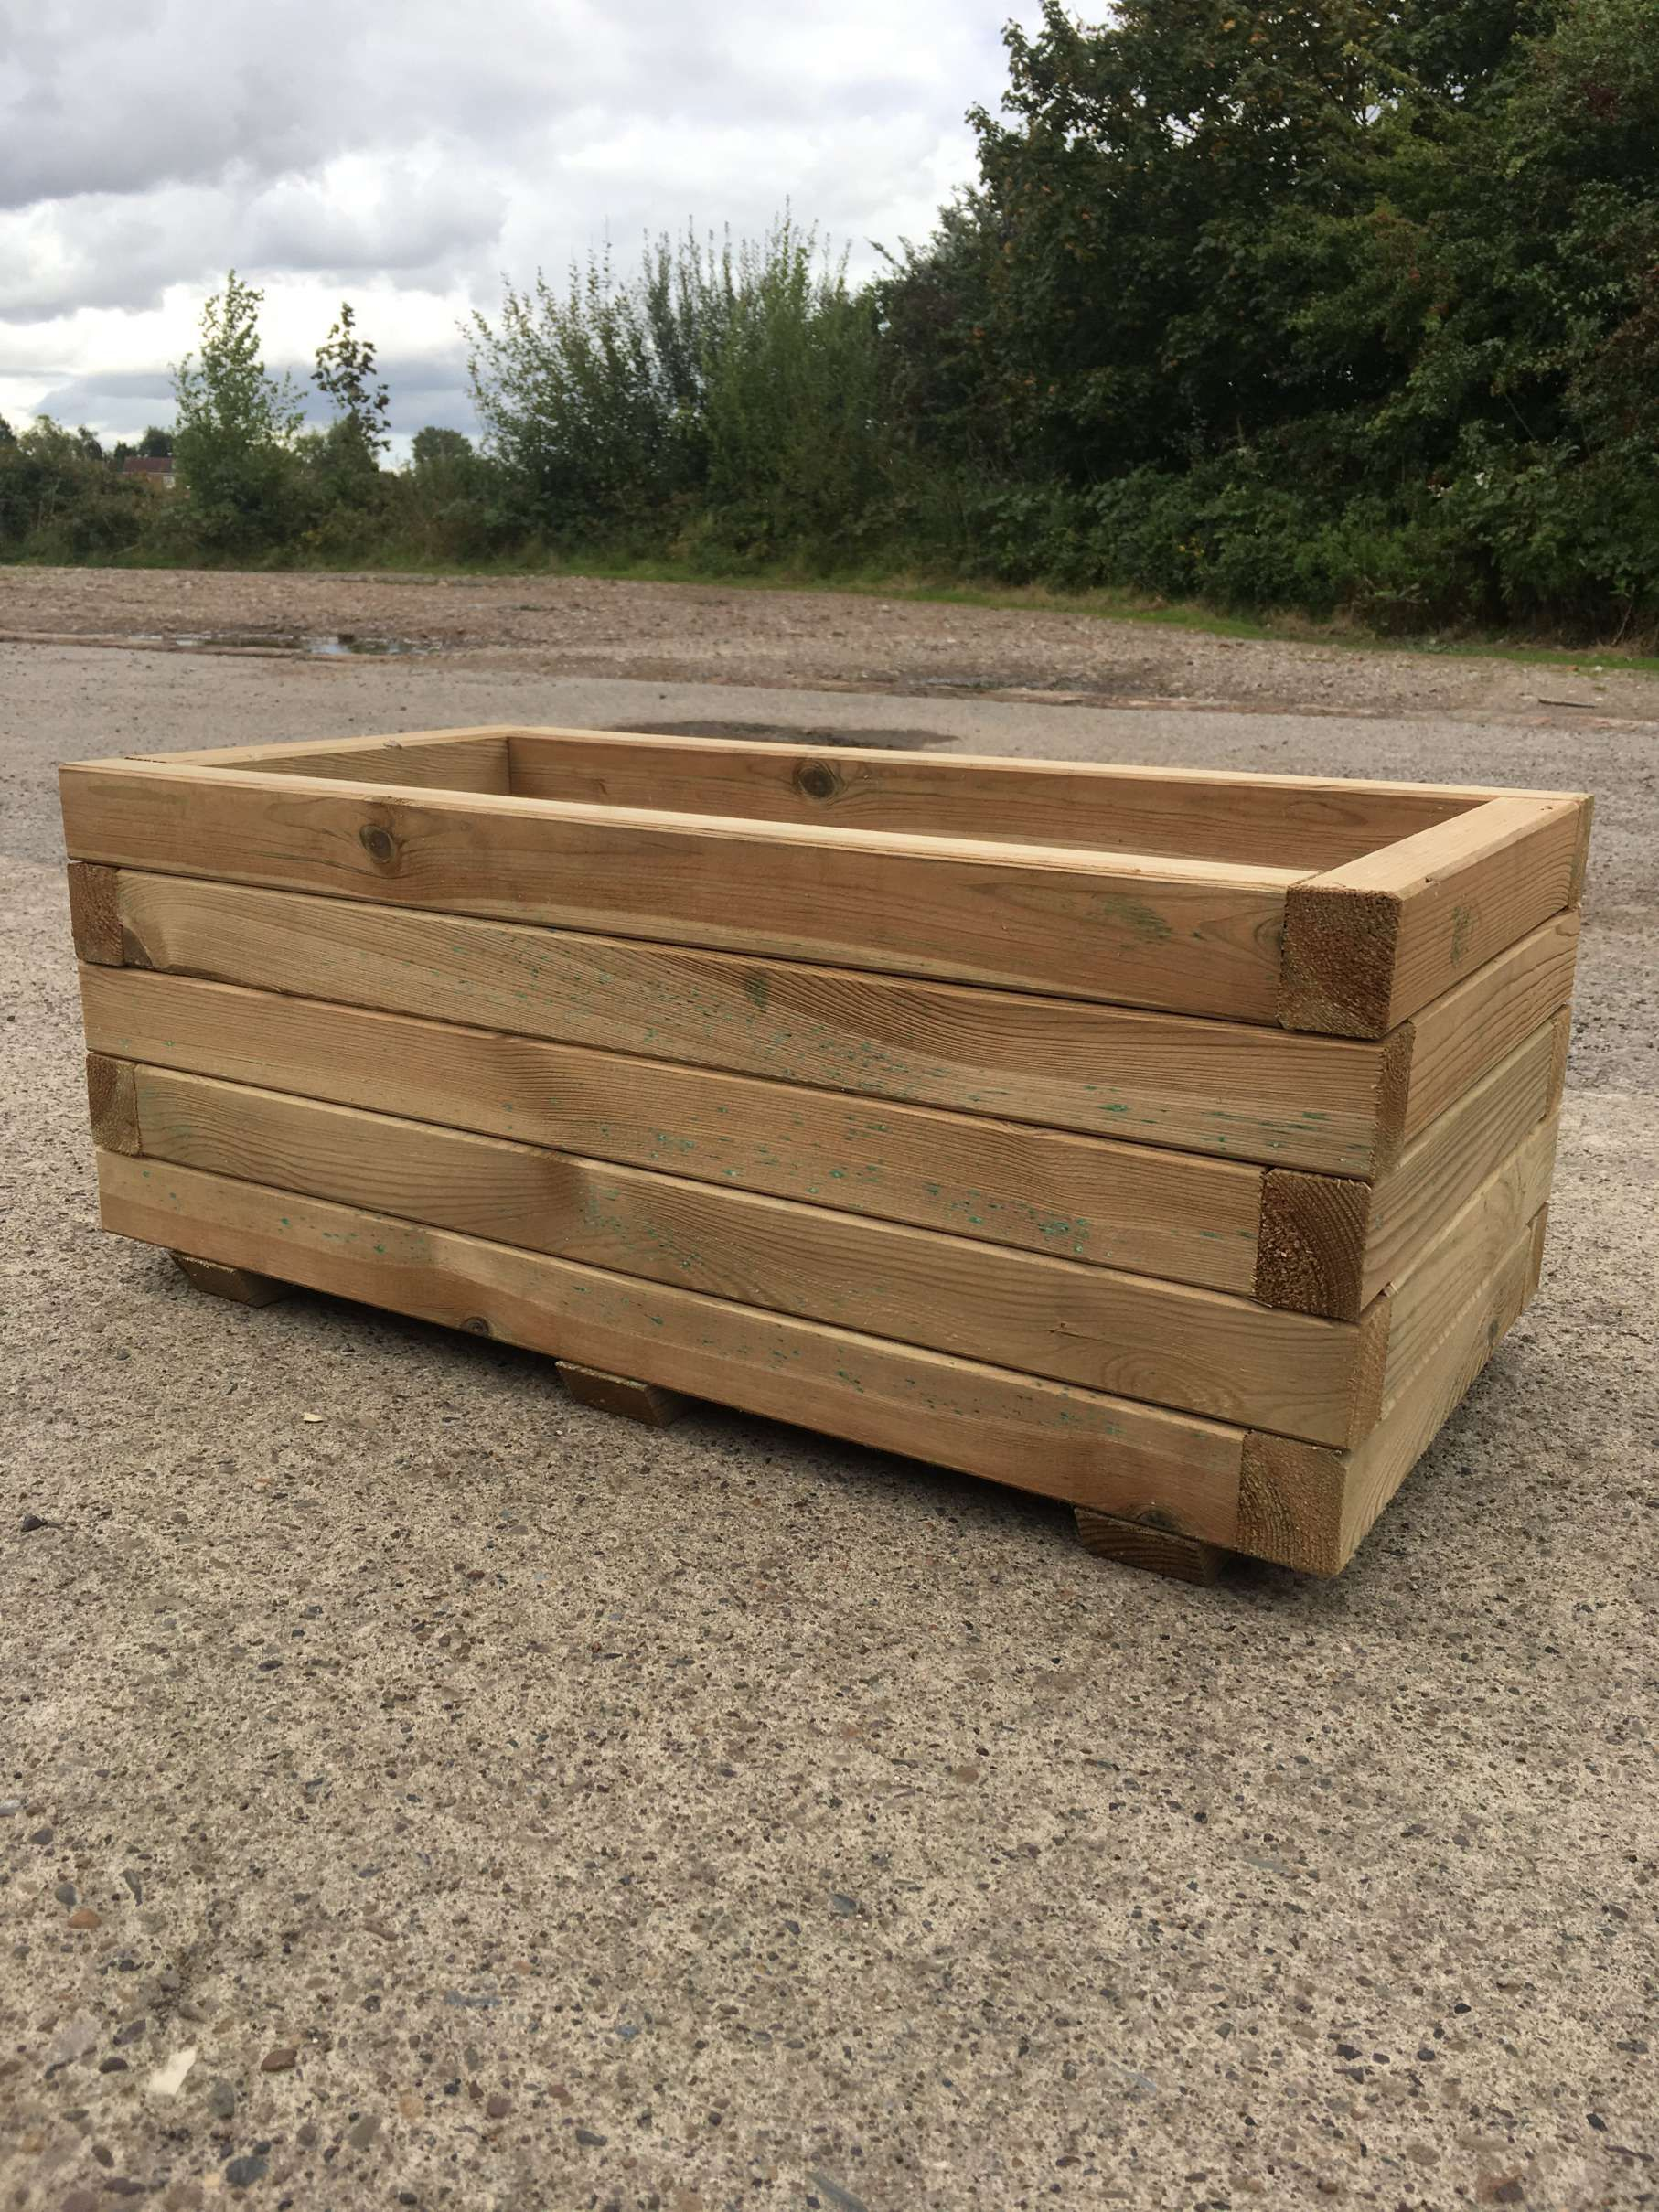 10 Fantastic Wooden Trough Planter Gallery Wooden Wooden House